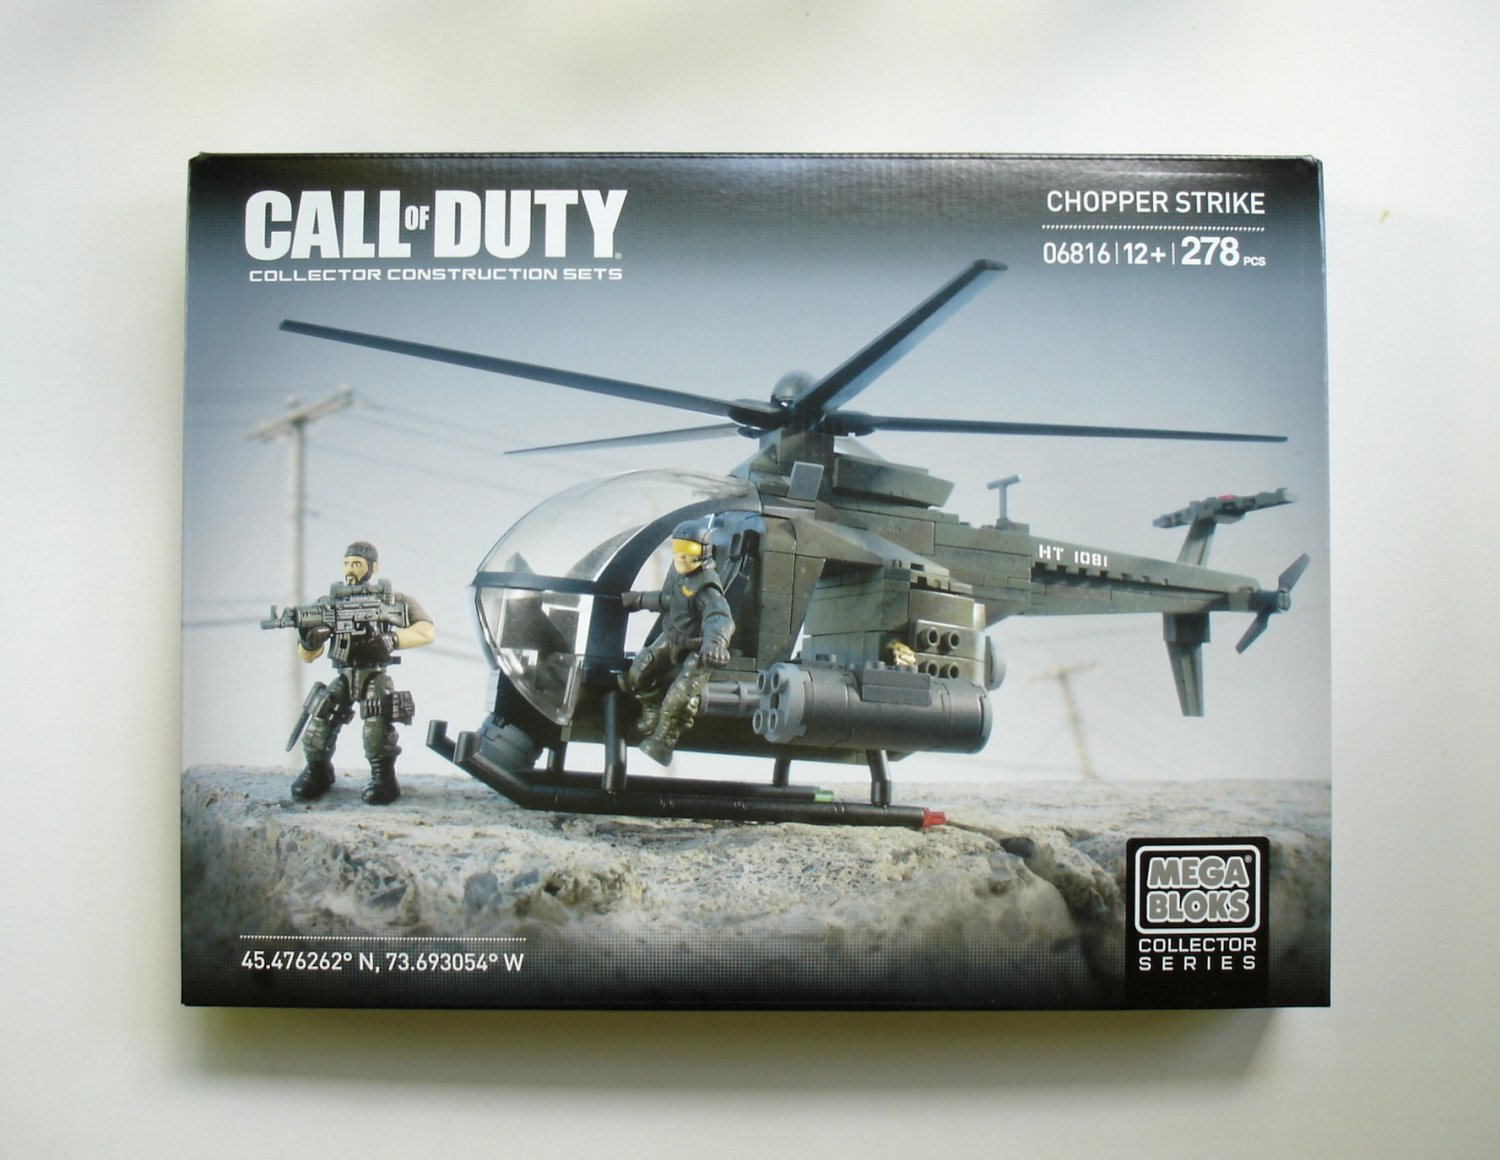 MEGA BLOKS Call of Duty Chopper Strike 06816 NEW